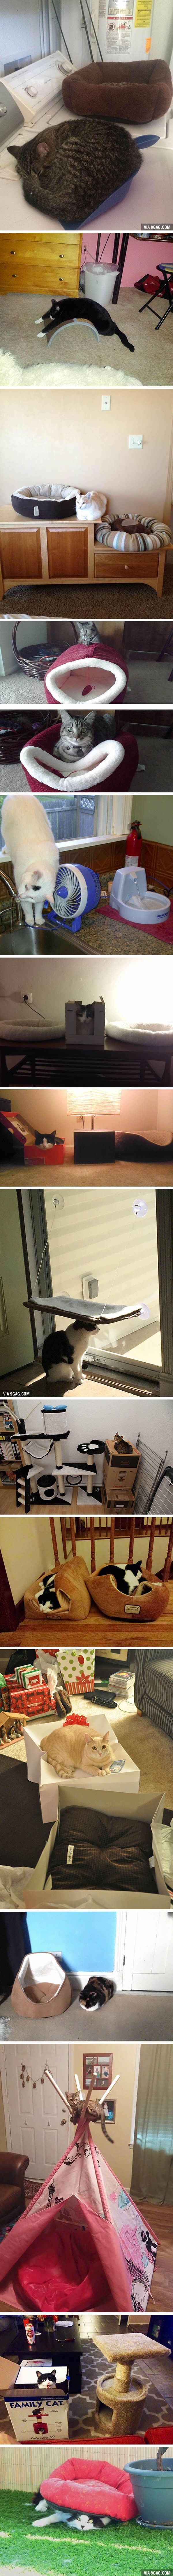 """Cats that are """"truly thankful"""" for your gifts... - 9GAG"""